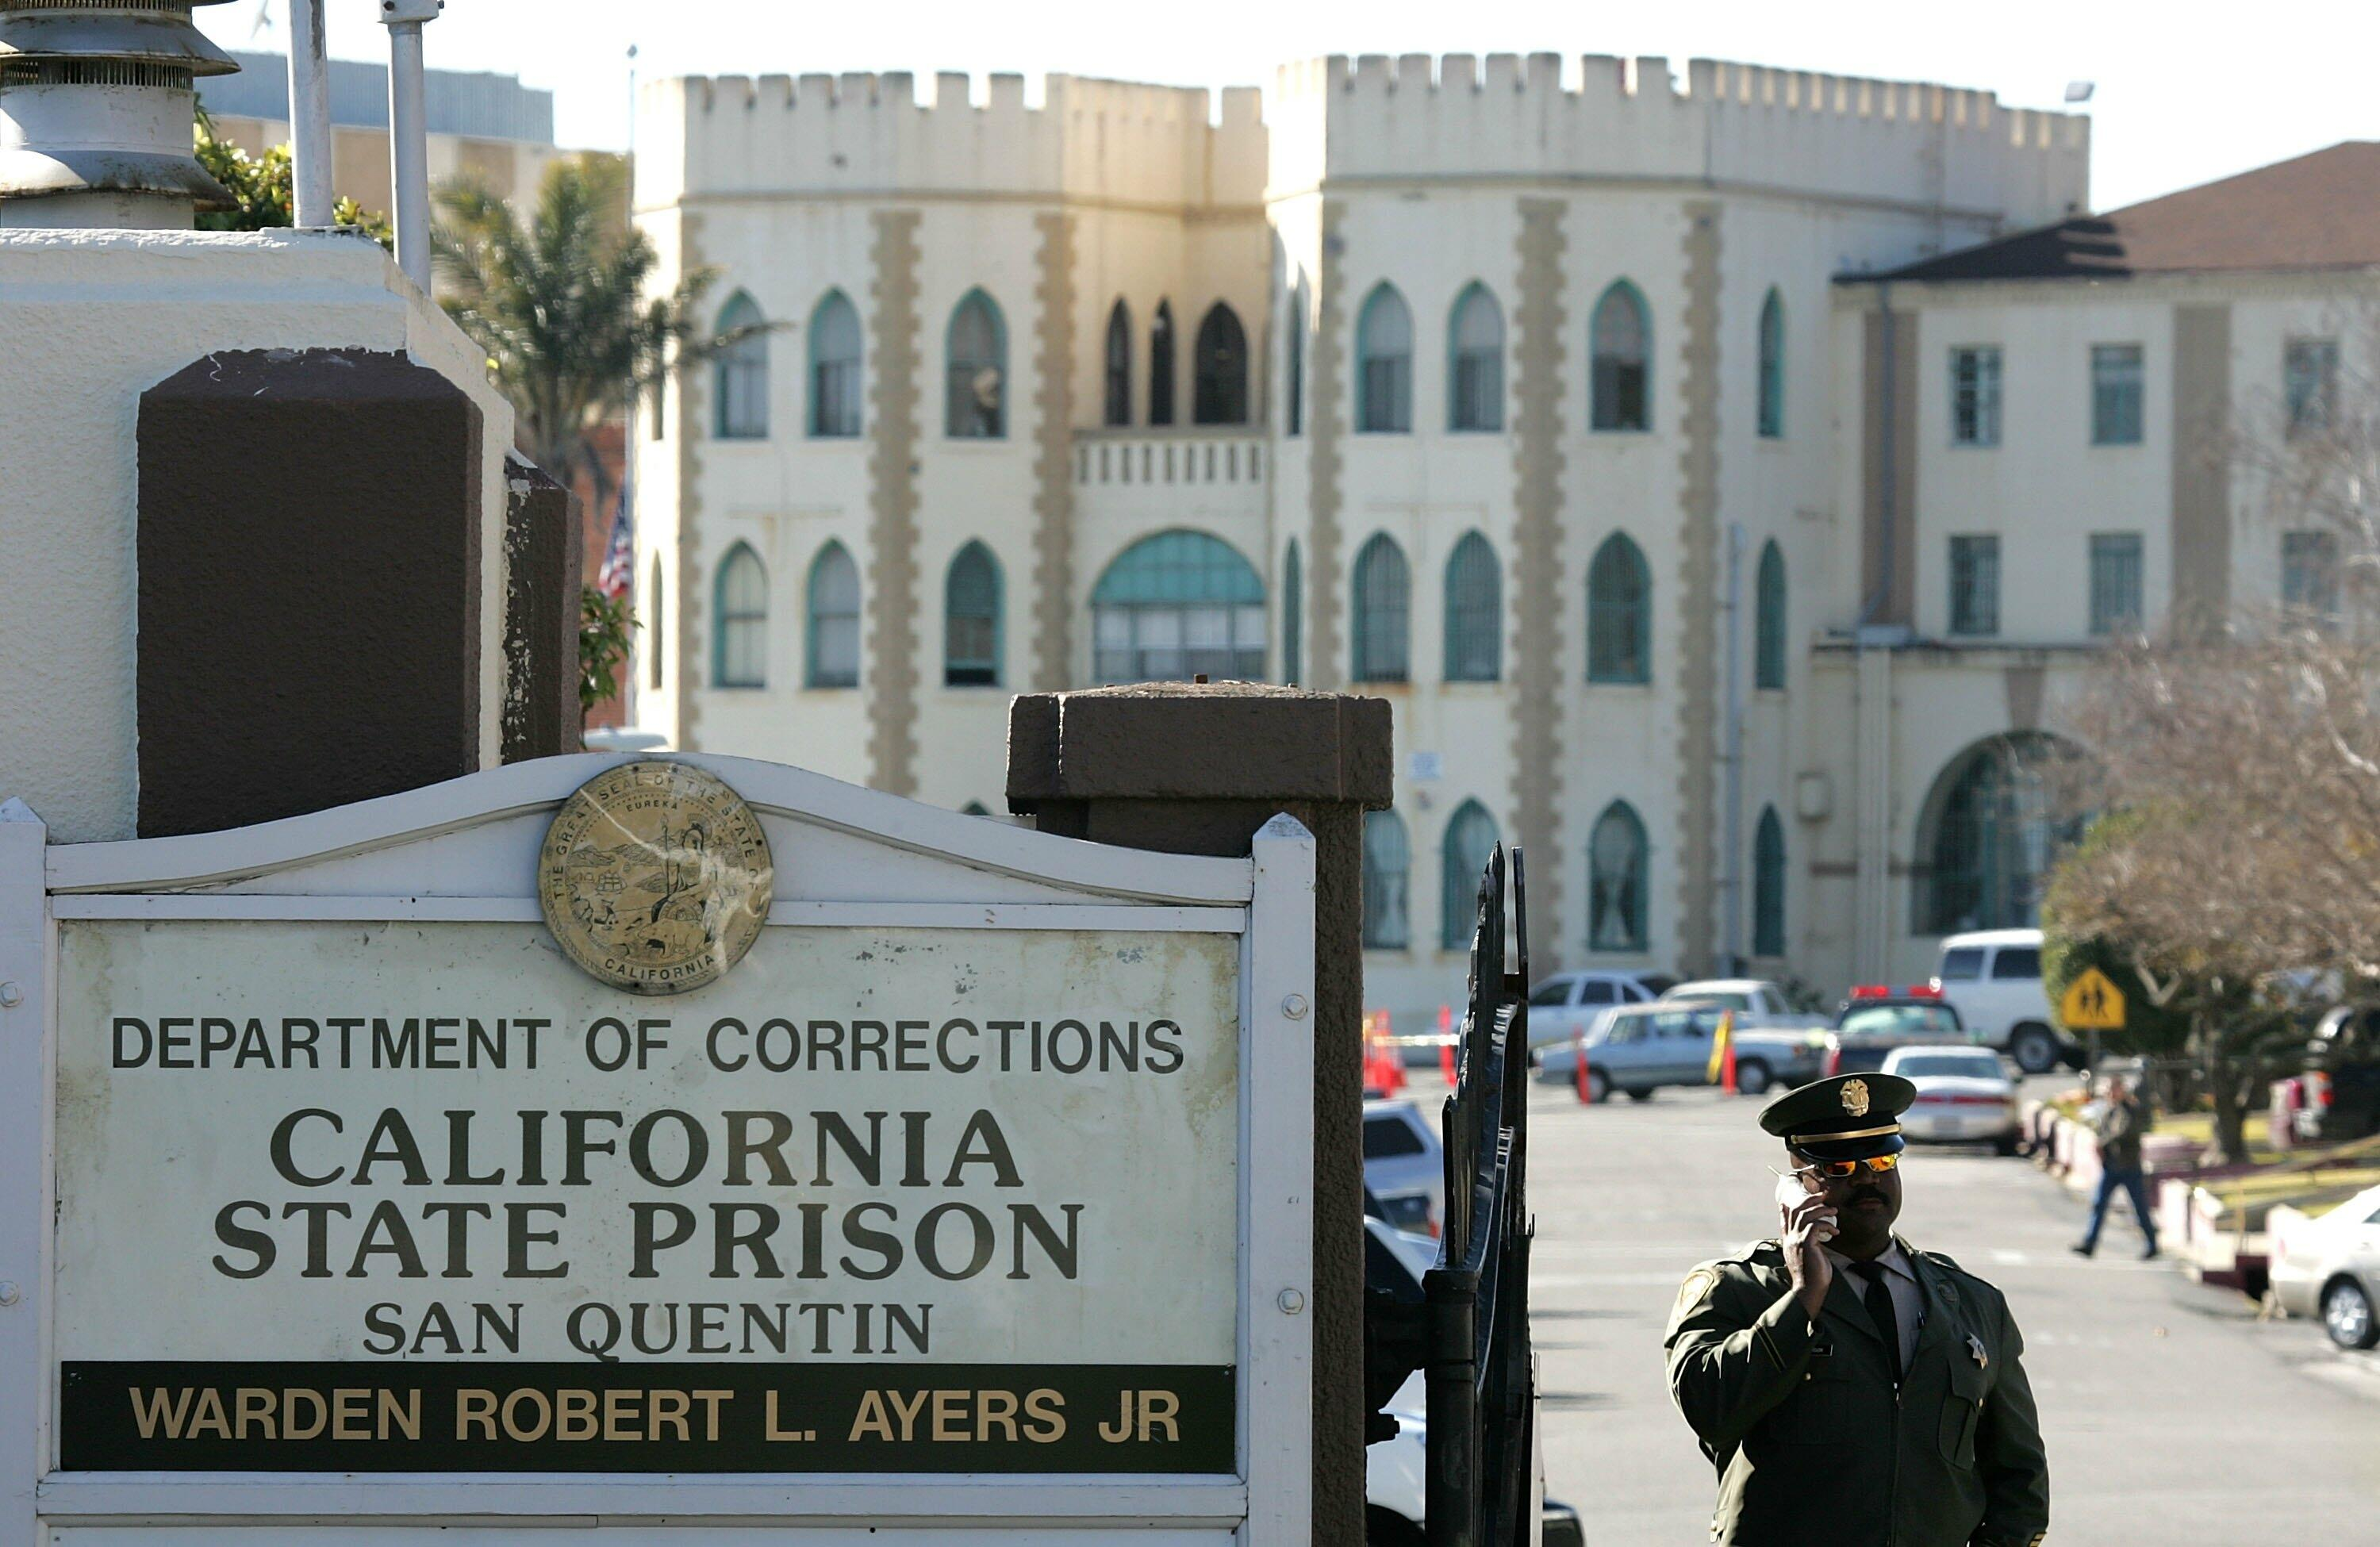 California Is Moving 700 Death Row Inmates Into Rehab And Work Programs | KFI AM 640